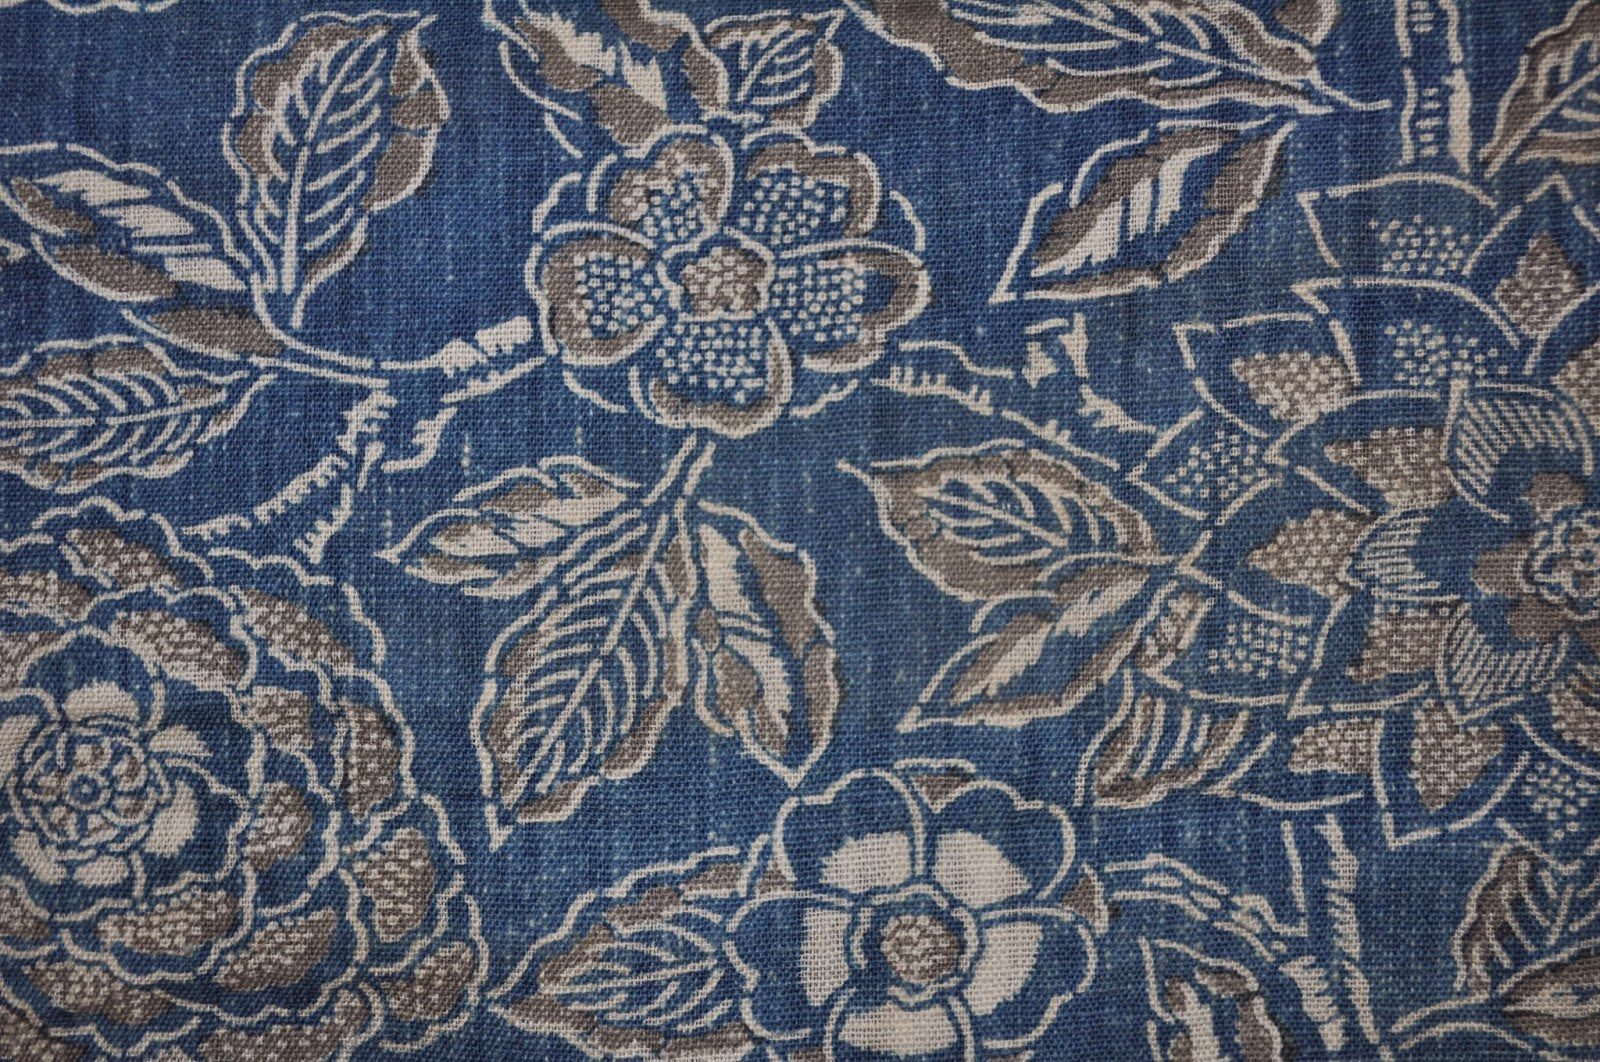 Wonkyworld: Japanese indigo katazome fabric book